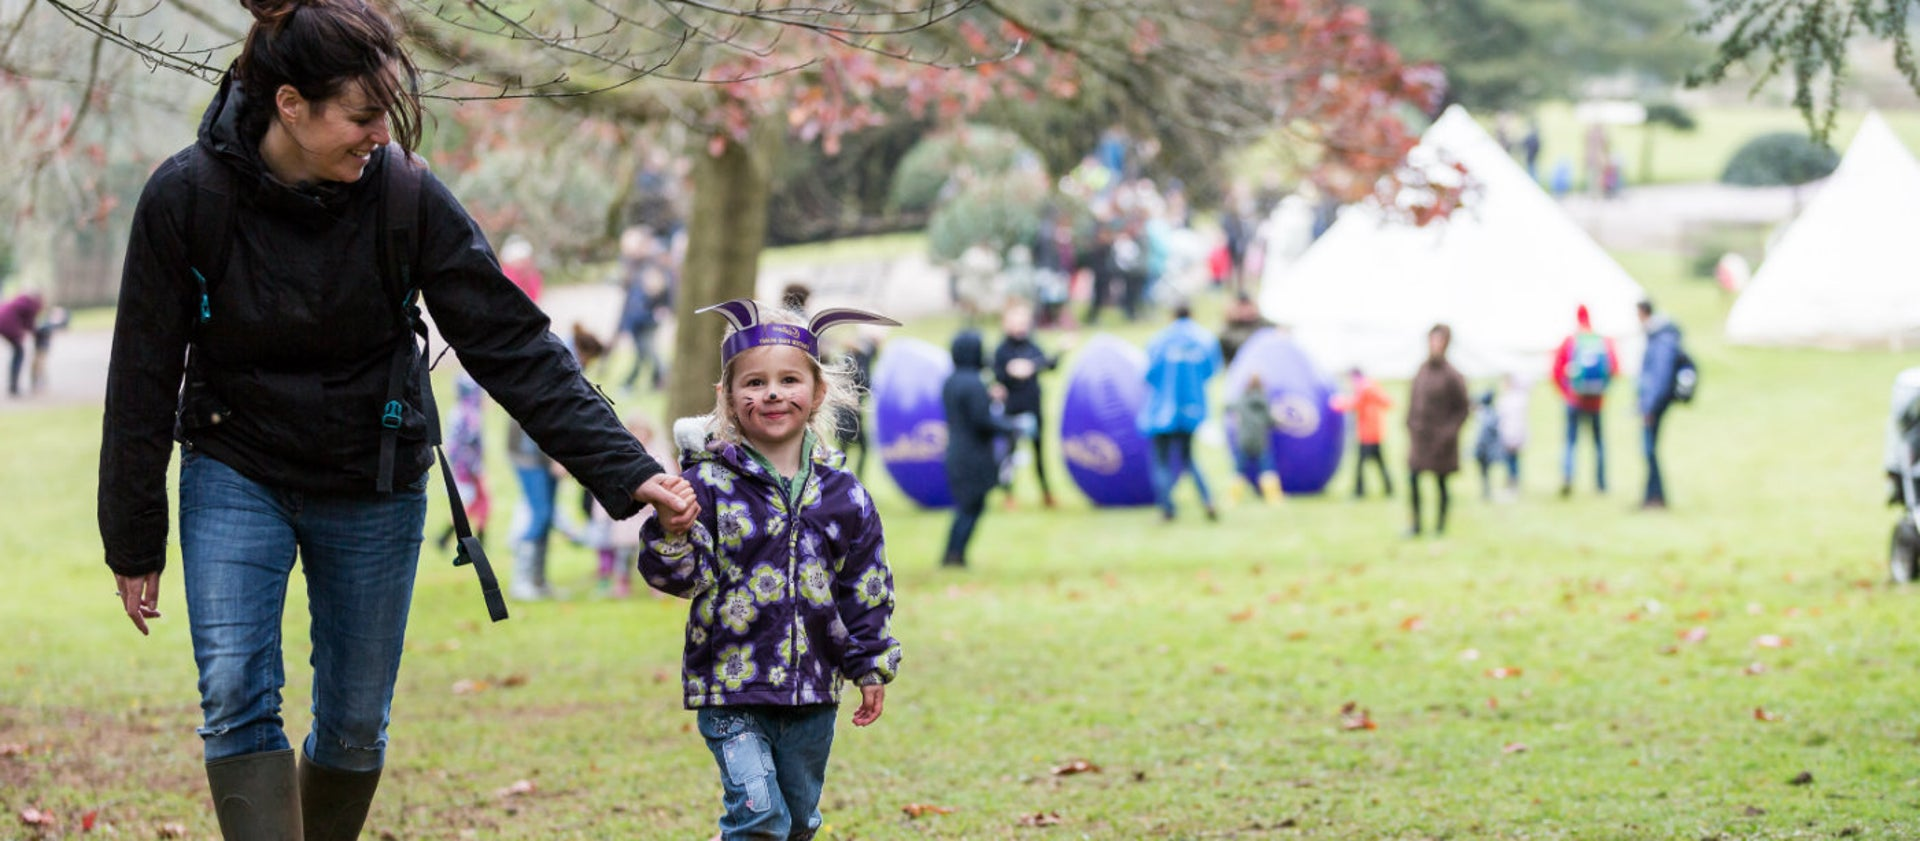 Cadbury's Easter Egg Hunt